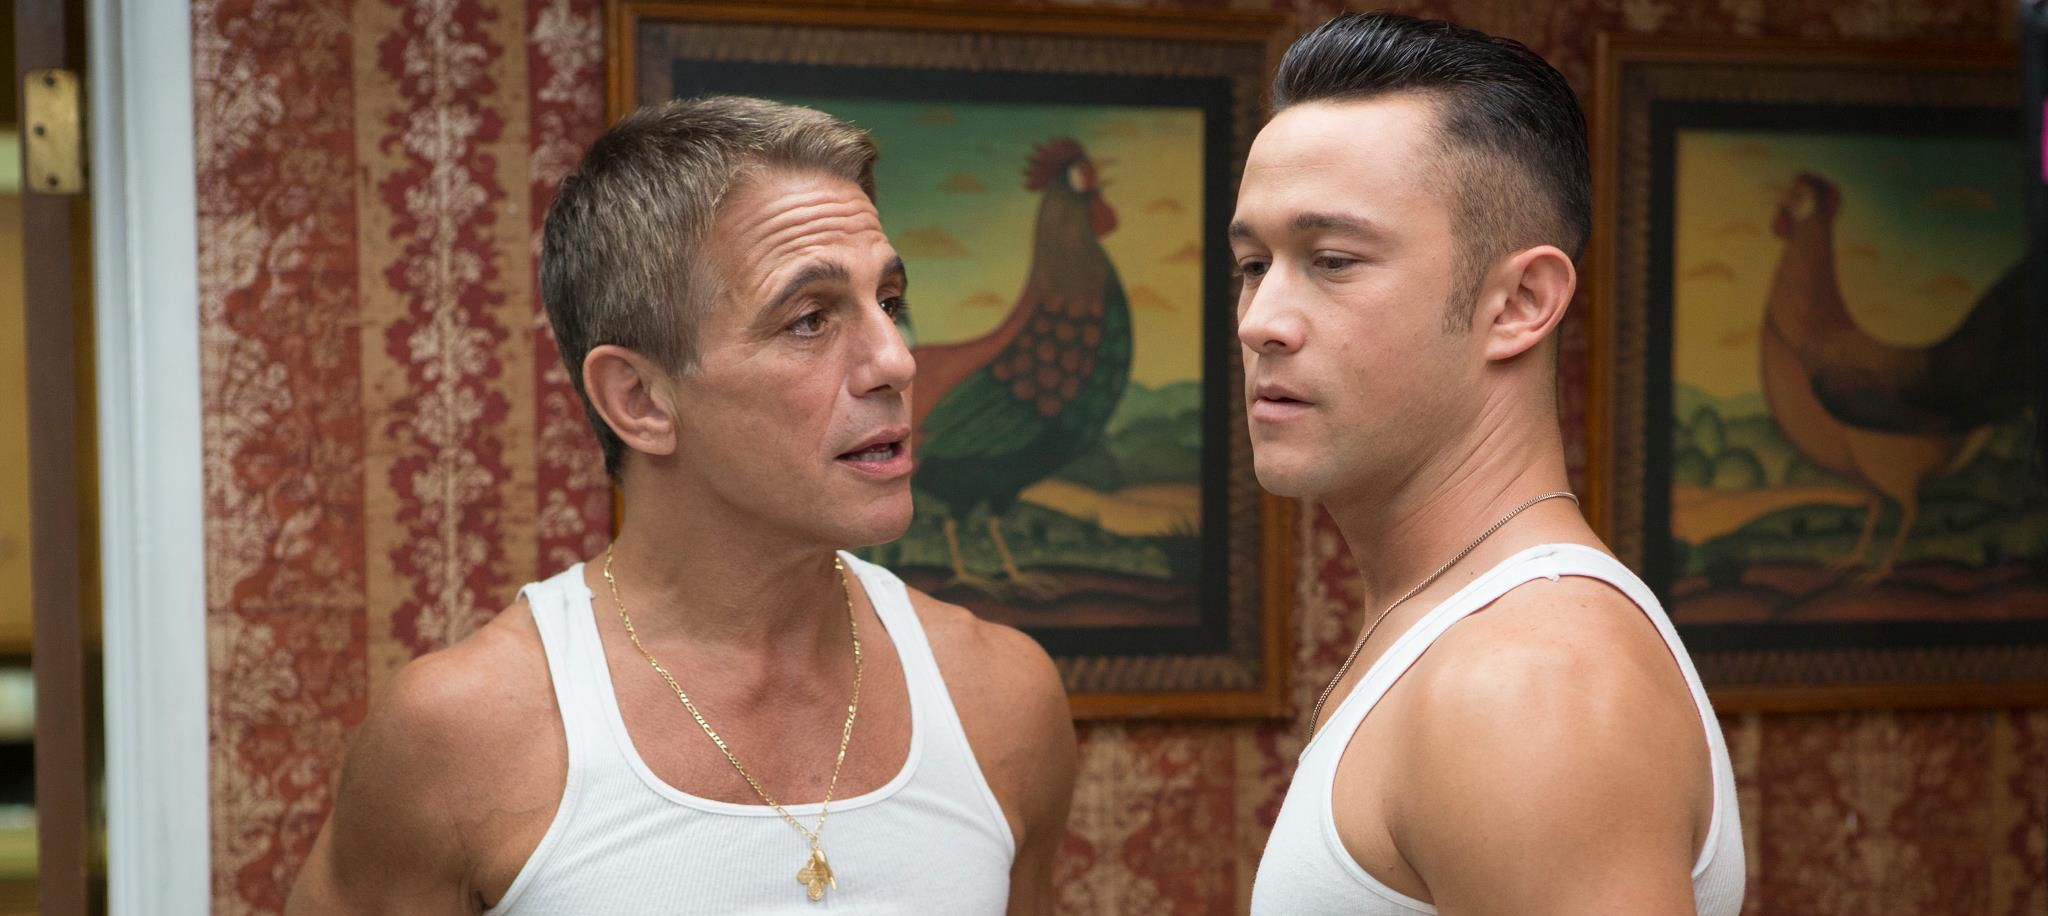 An image from Don Jon